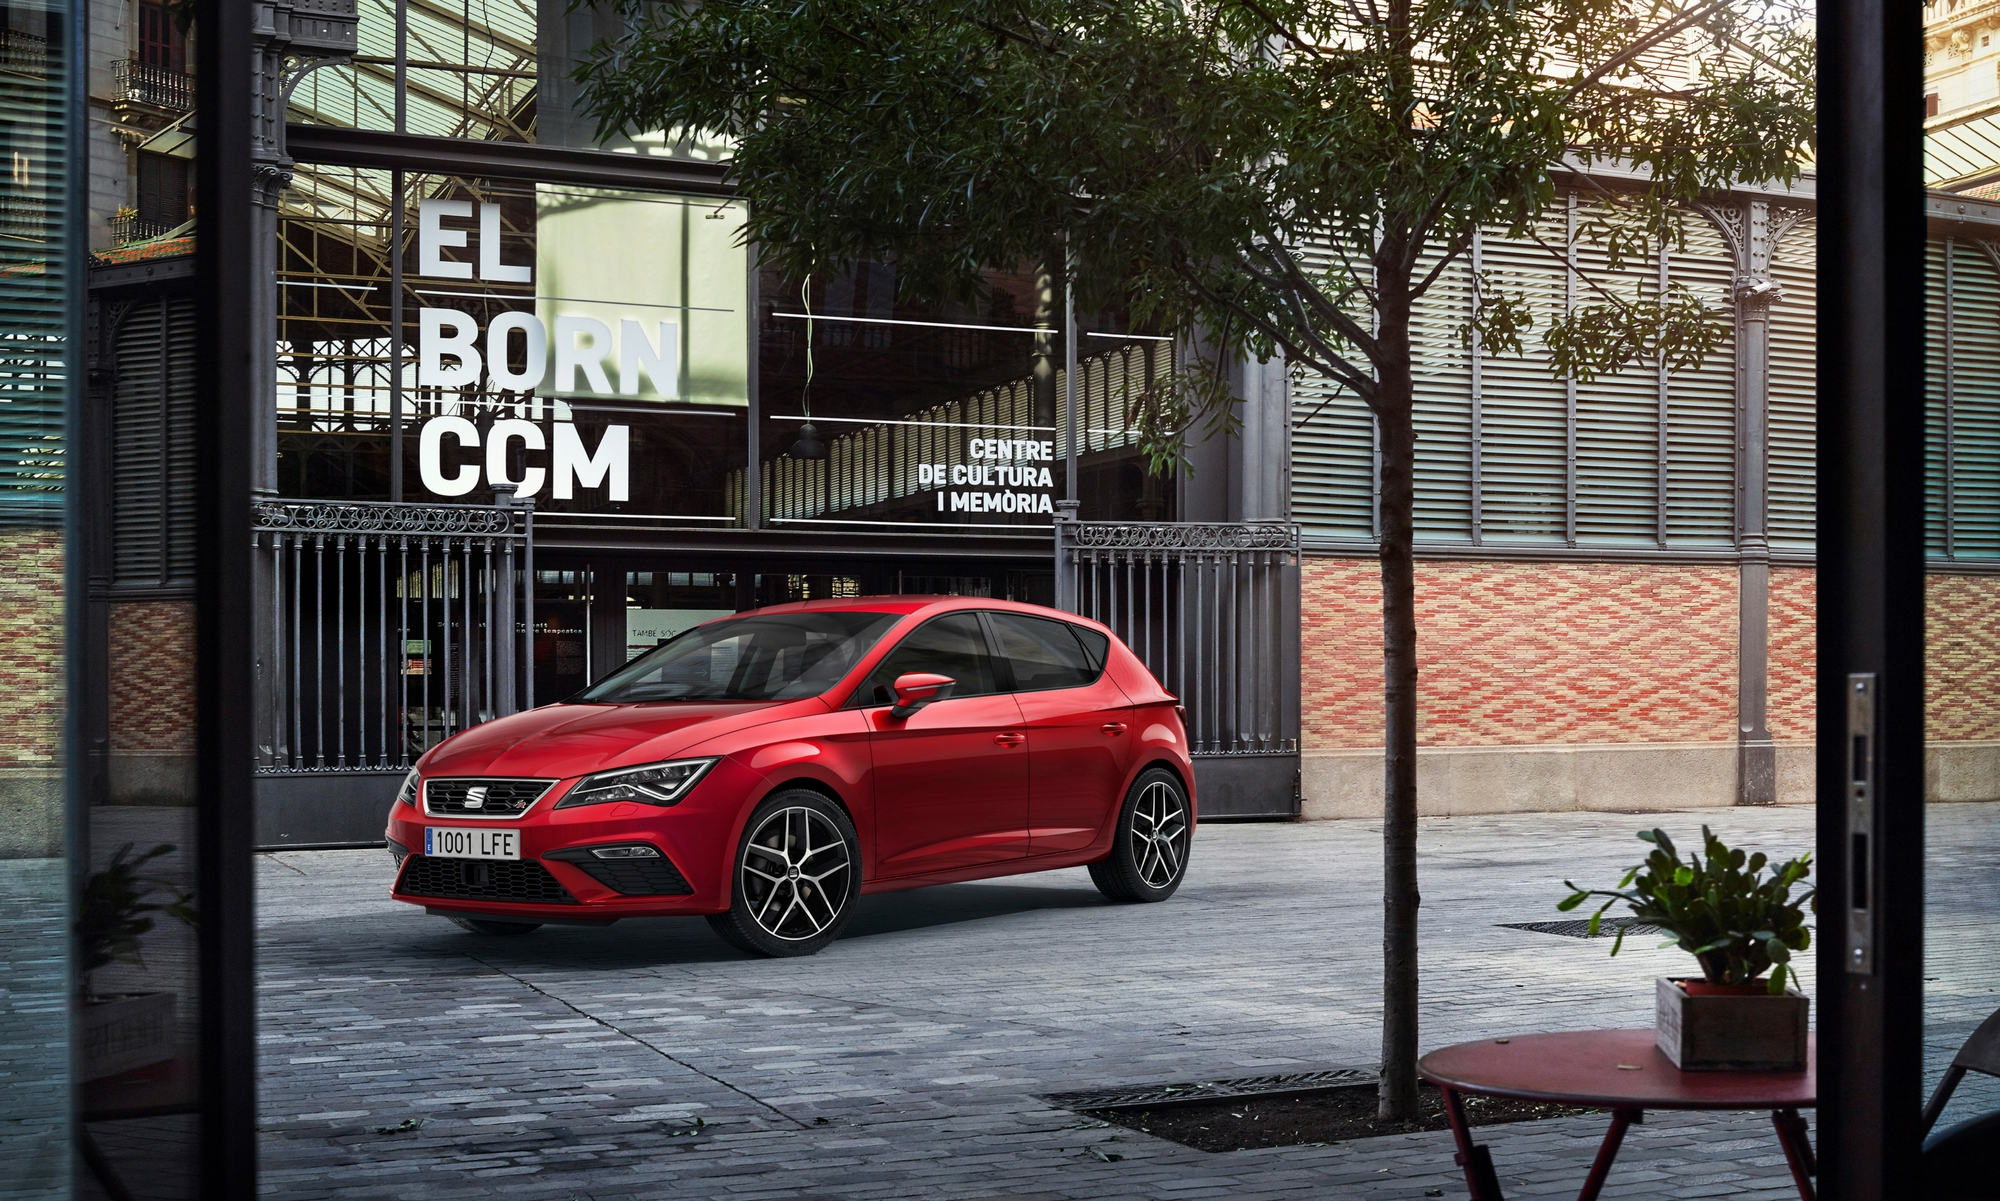 branded videos: the new seat leon car model